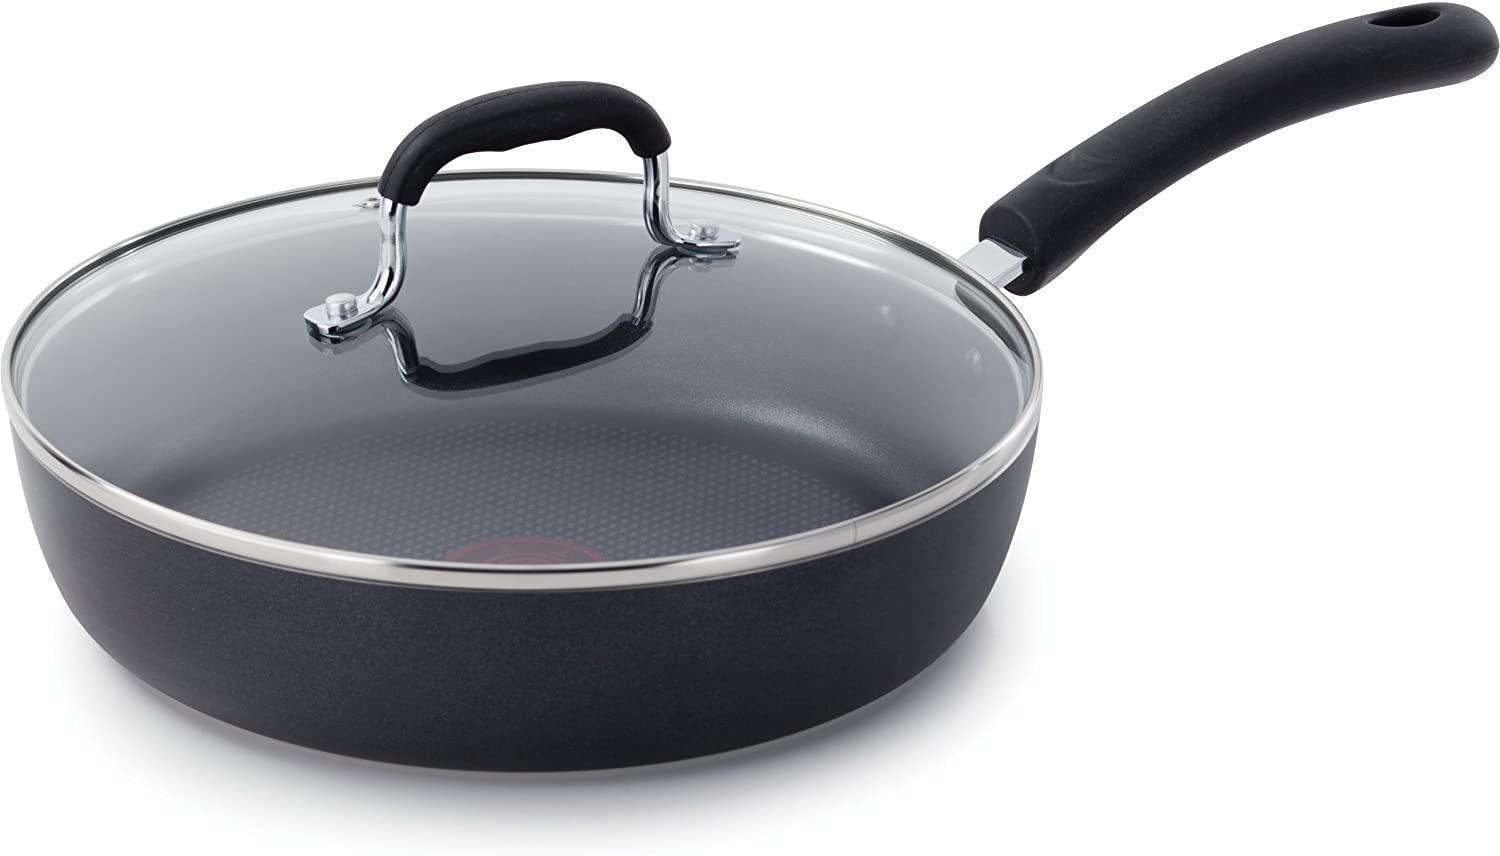 T-fal E93897 10-Inch Dishwasher Safe Frying Pan & Lid